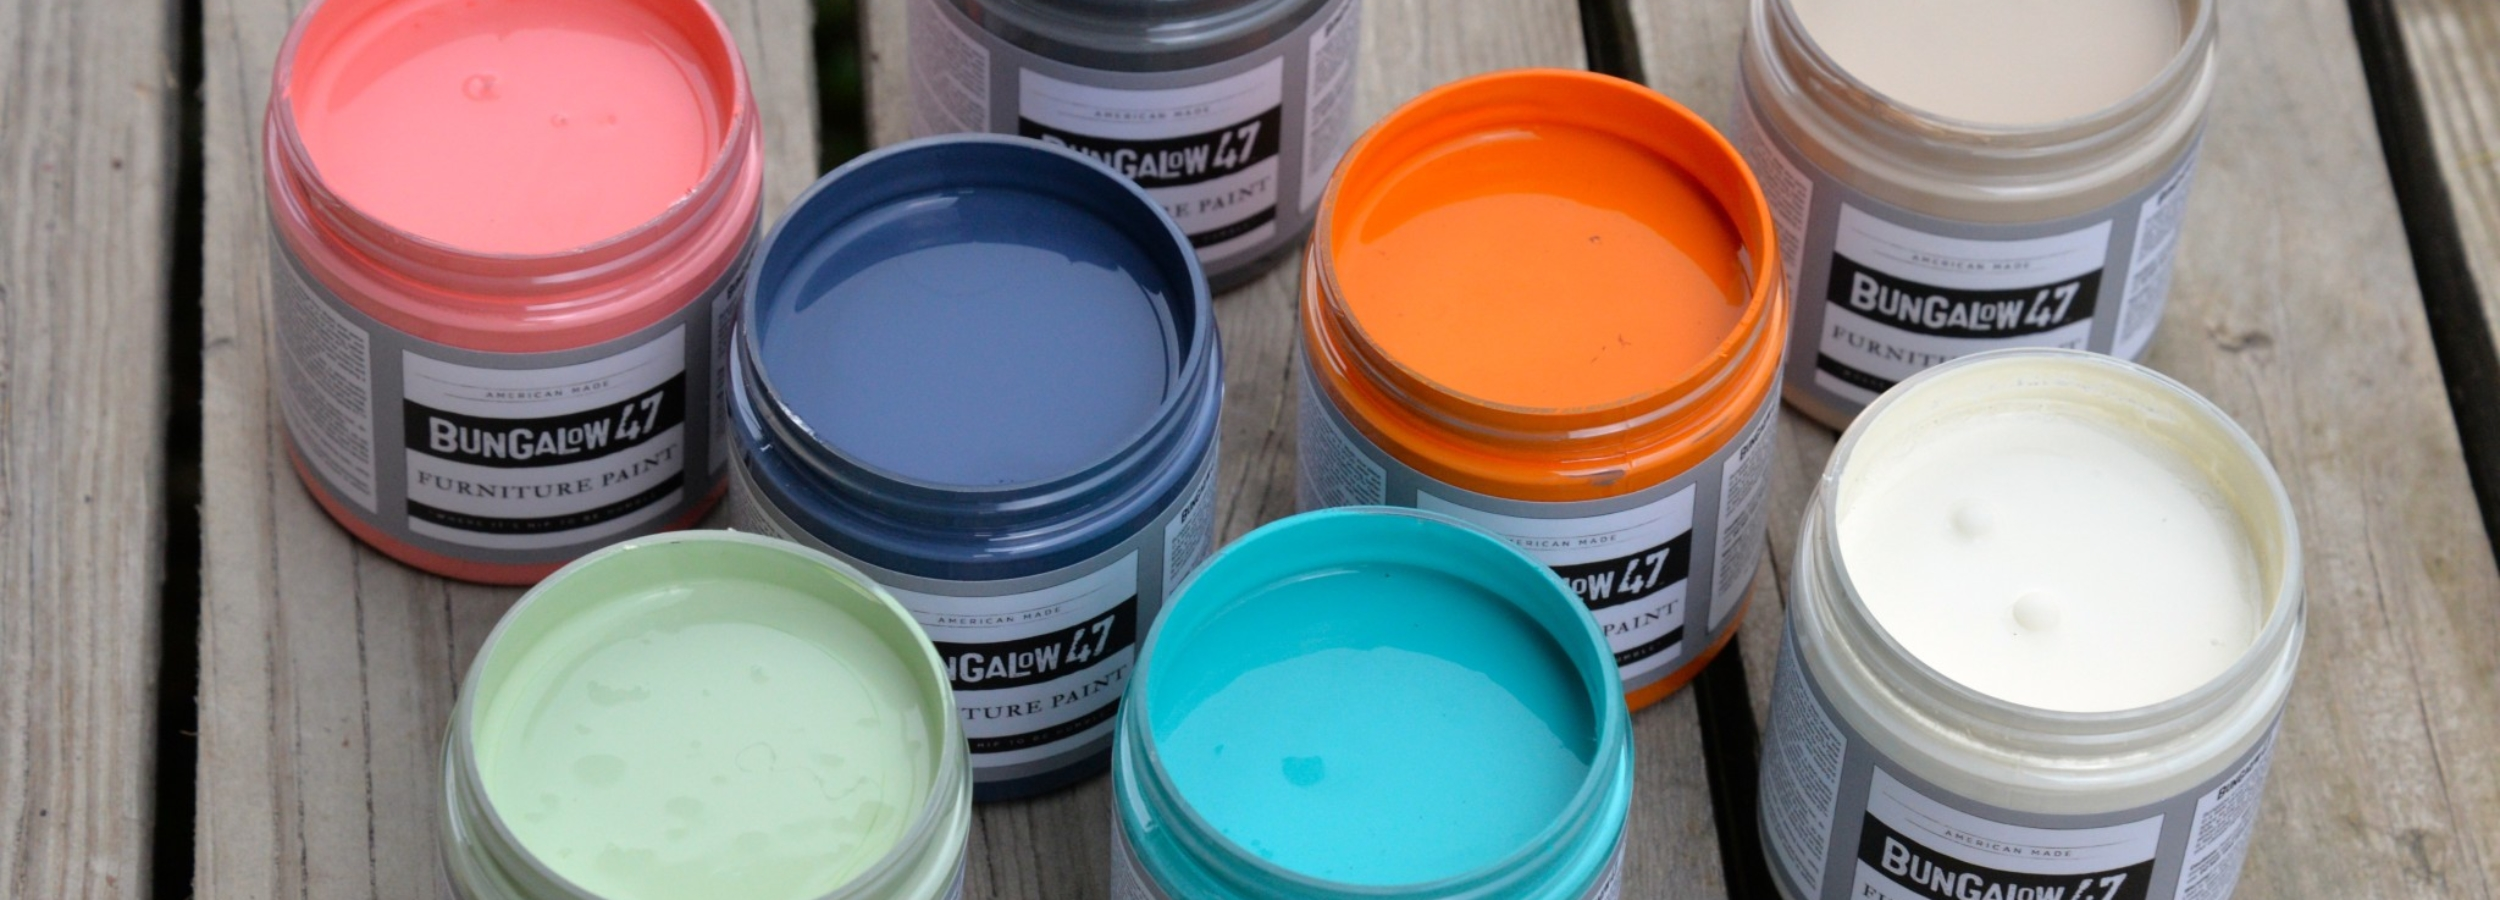 b47-paints-home